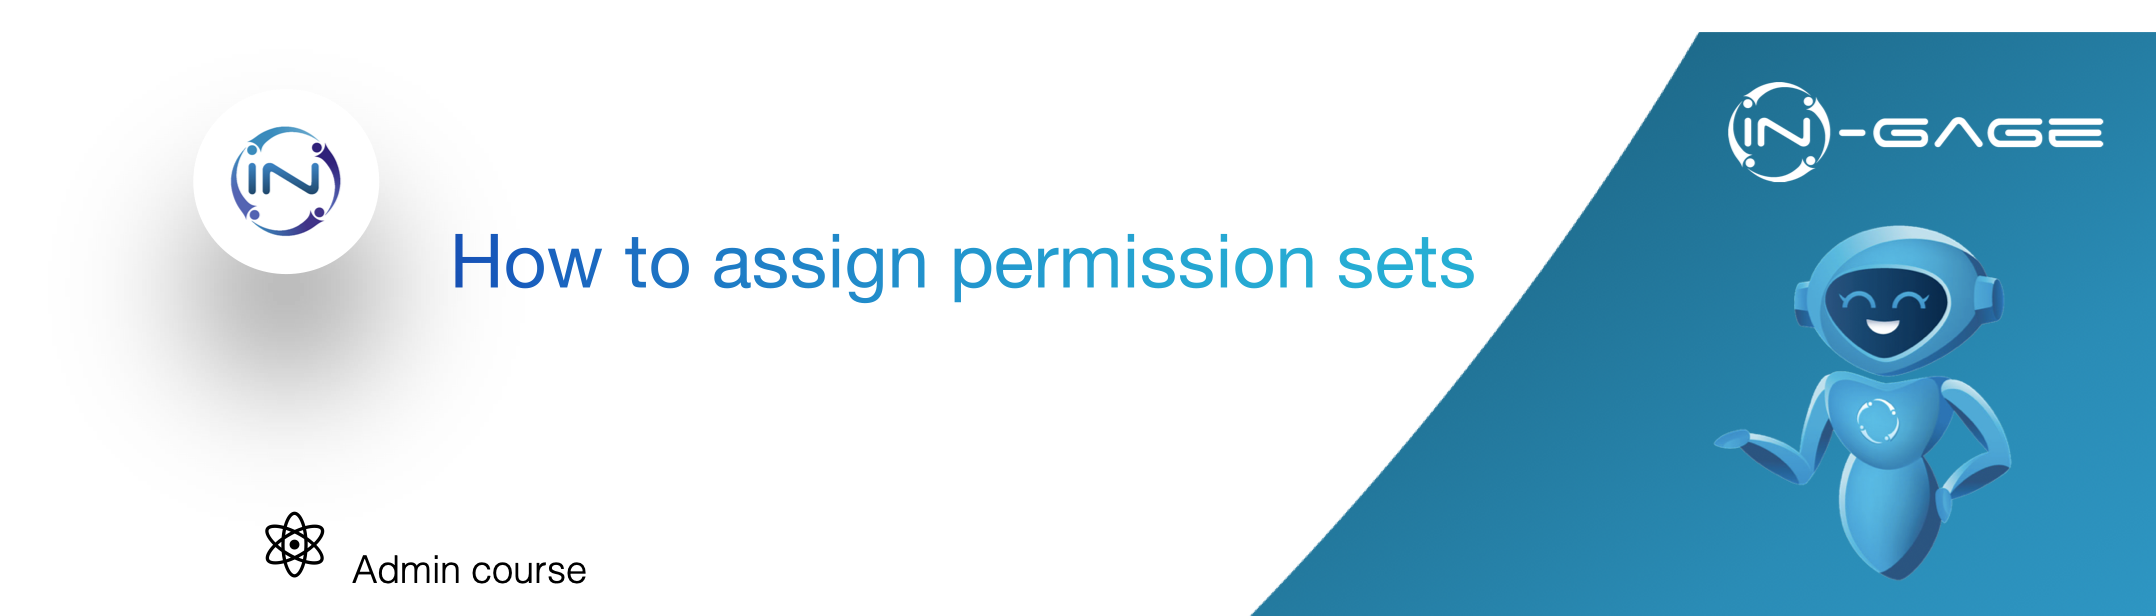 How to assign permission sets